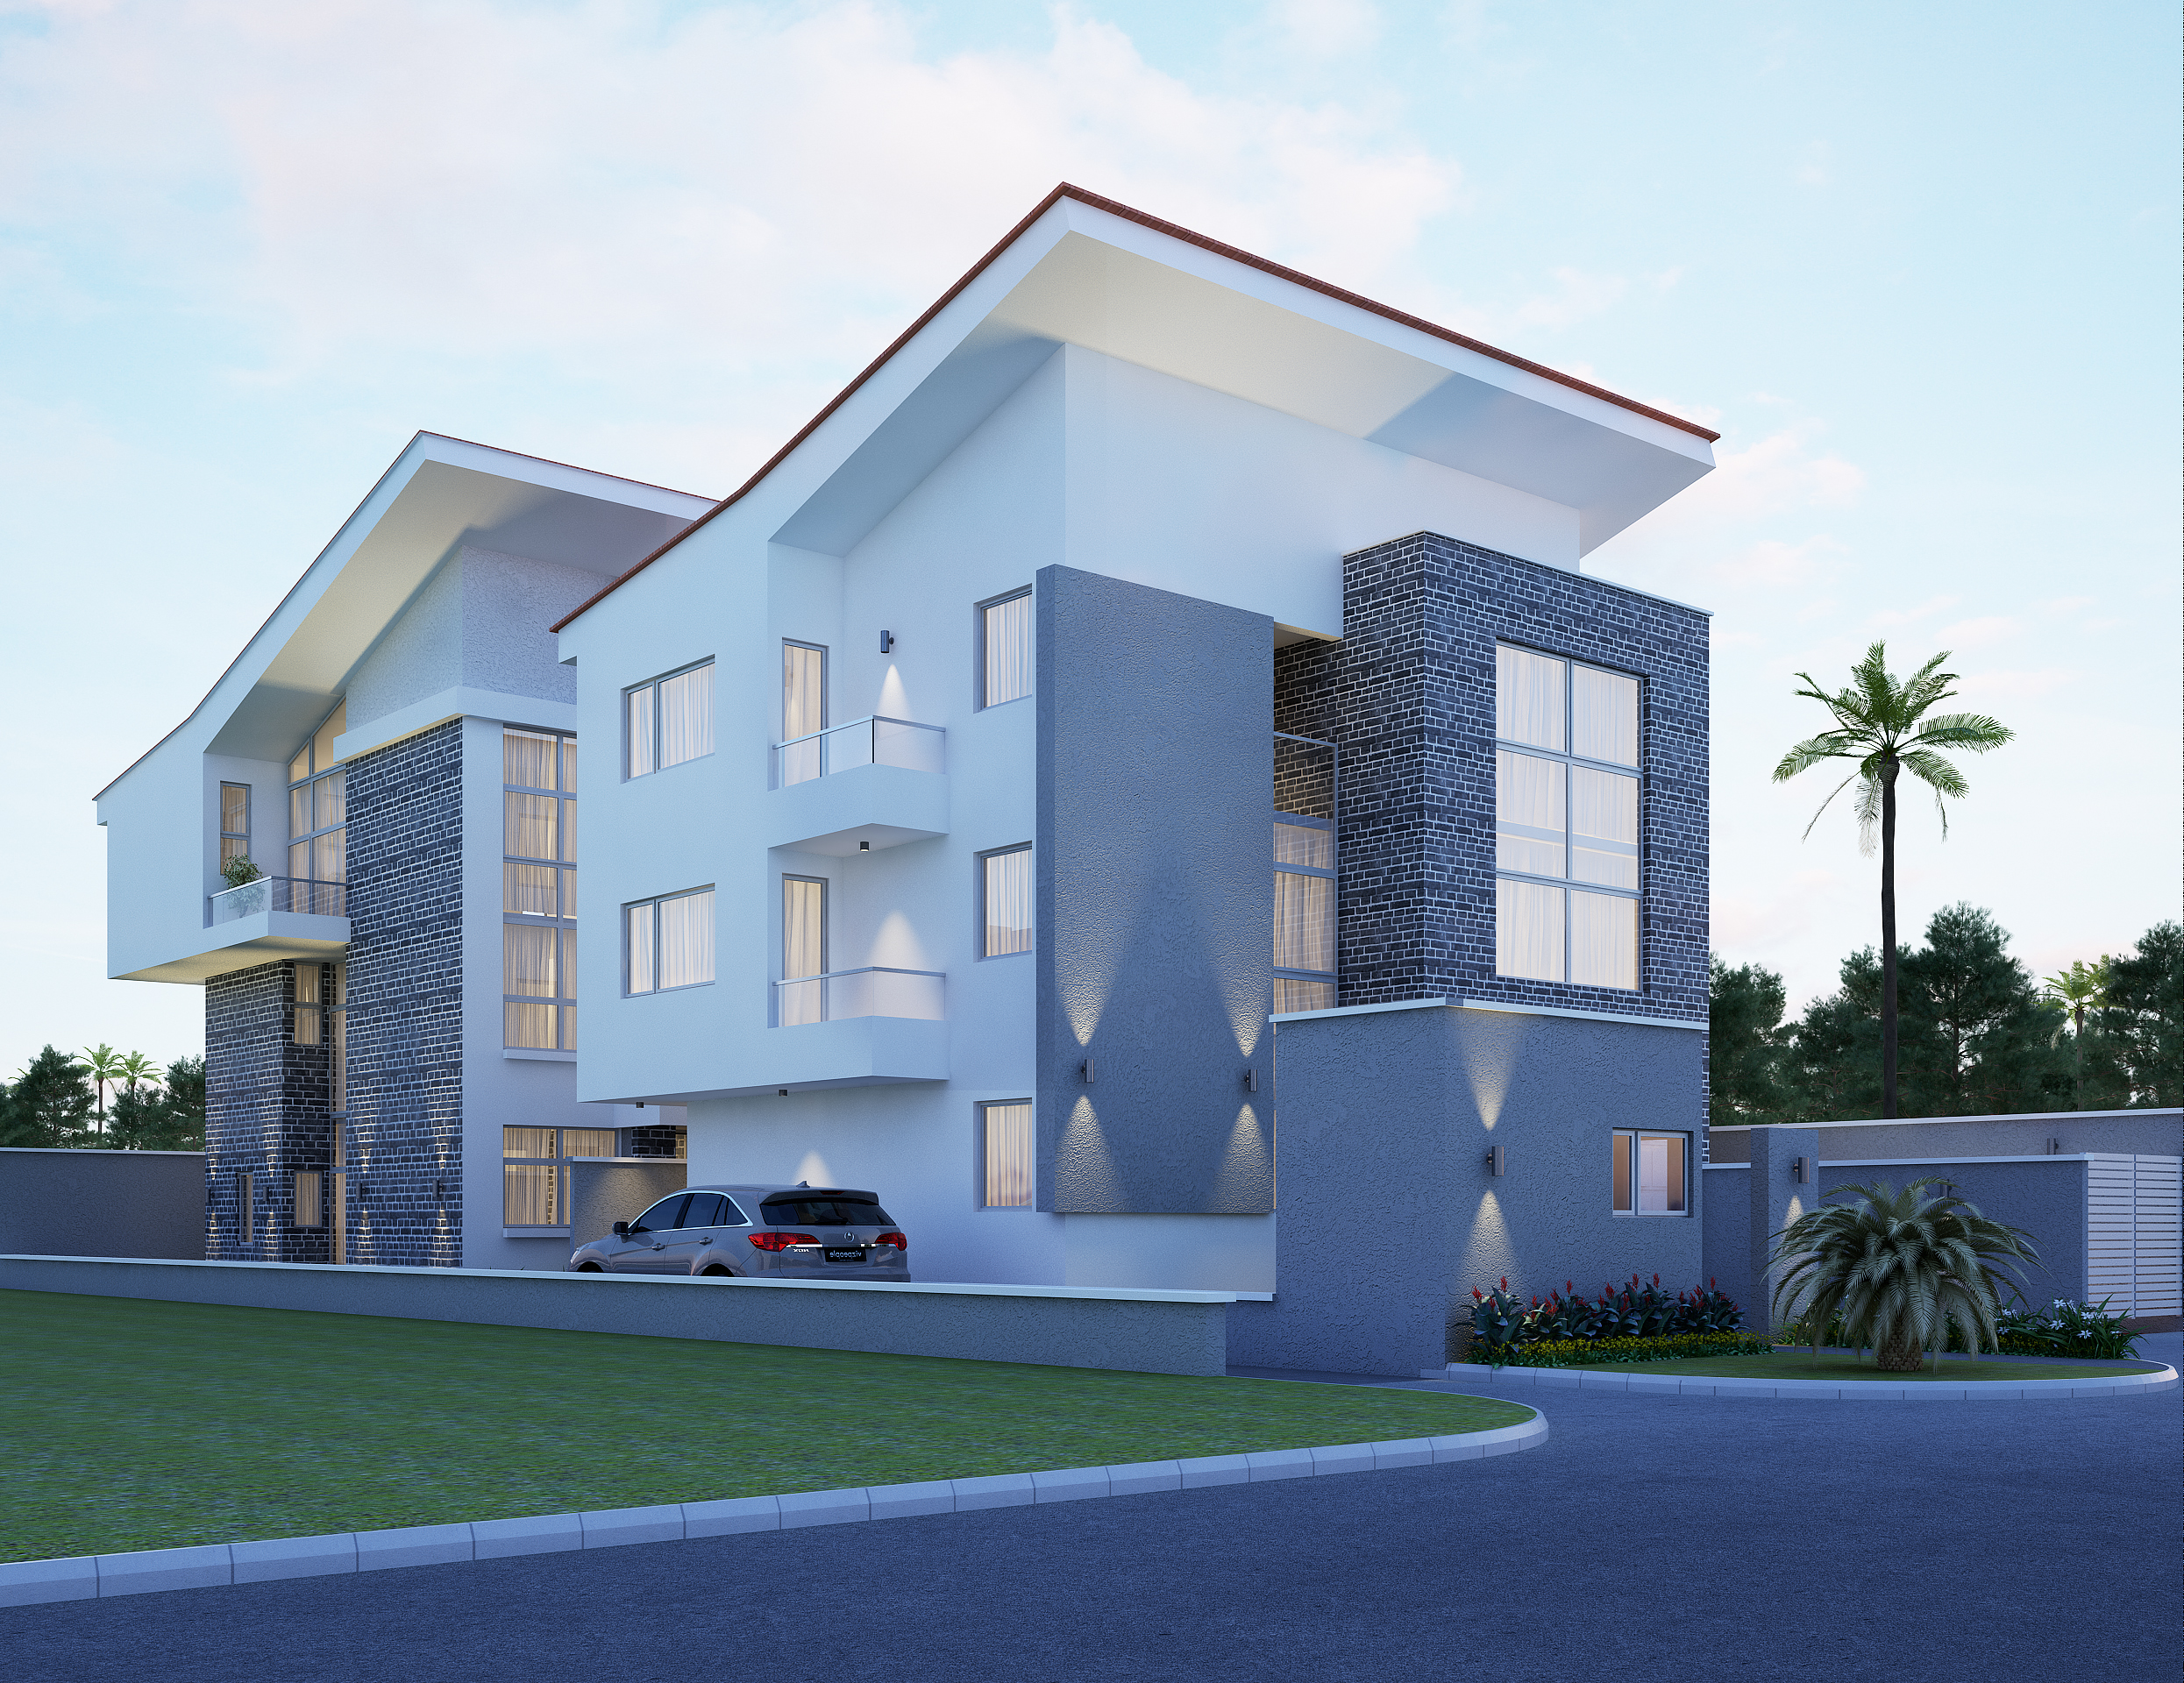 2 Units of 4 Bedroom Contemporary Built Semi Detached